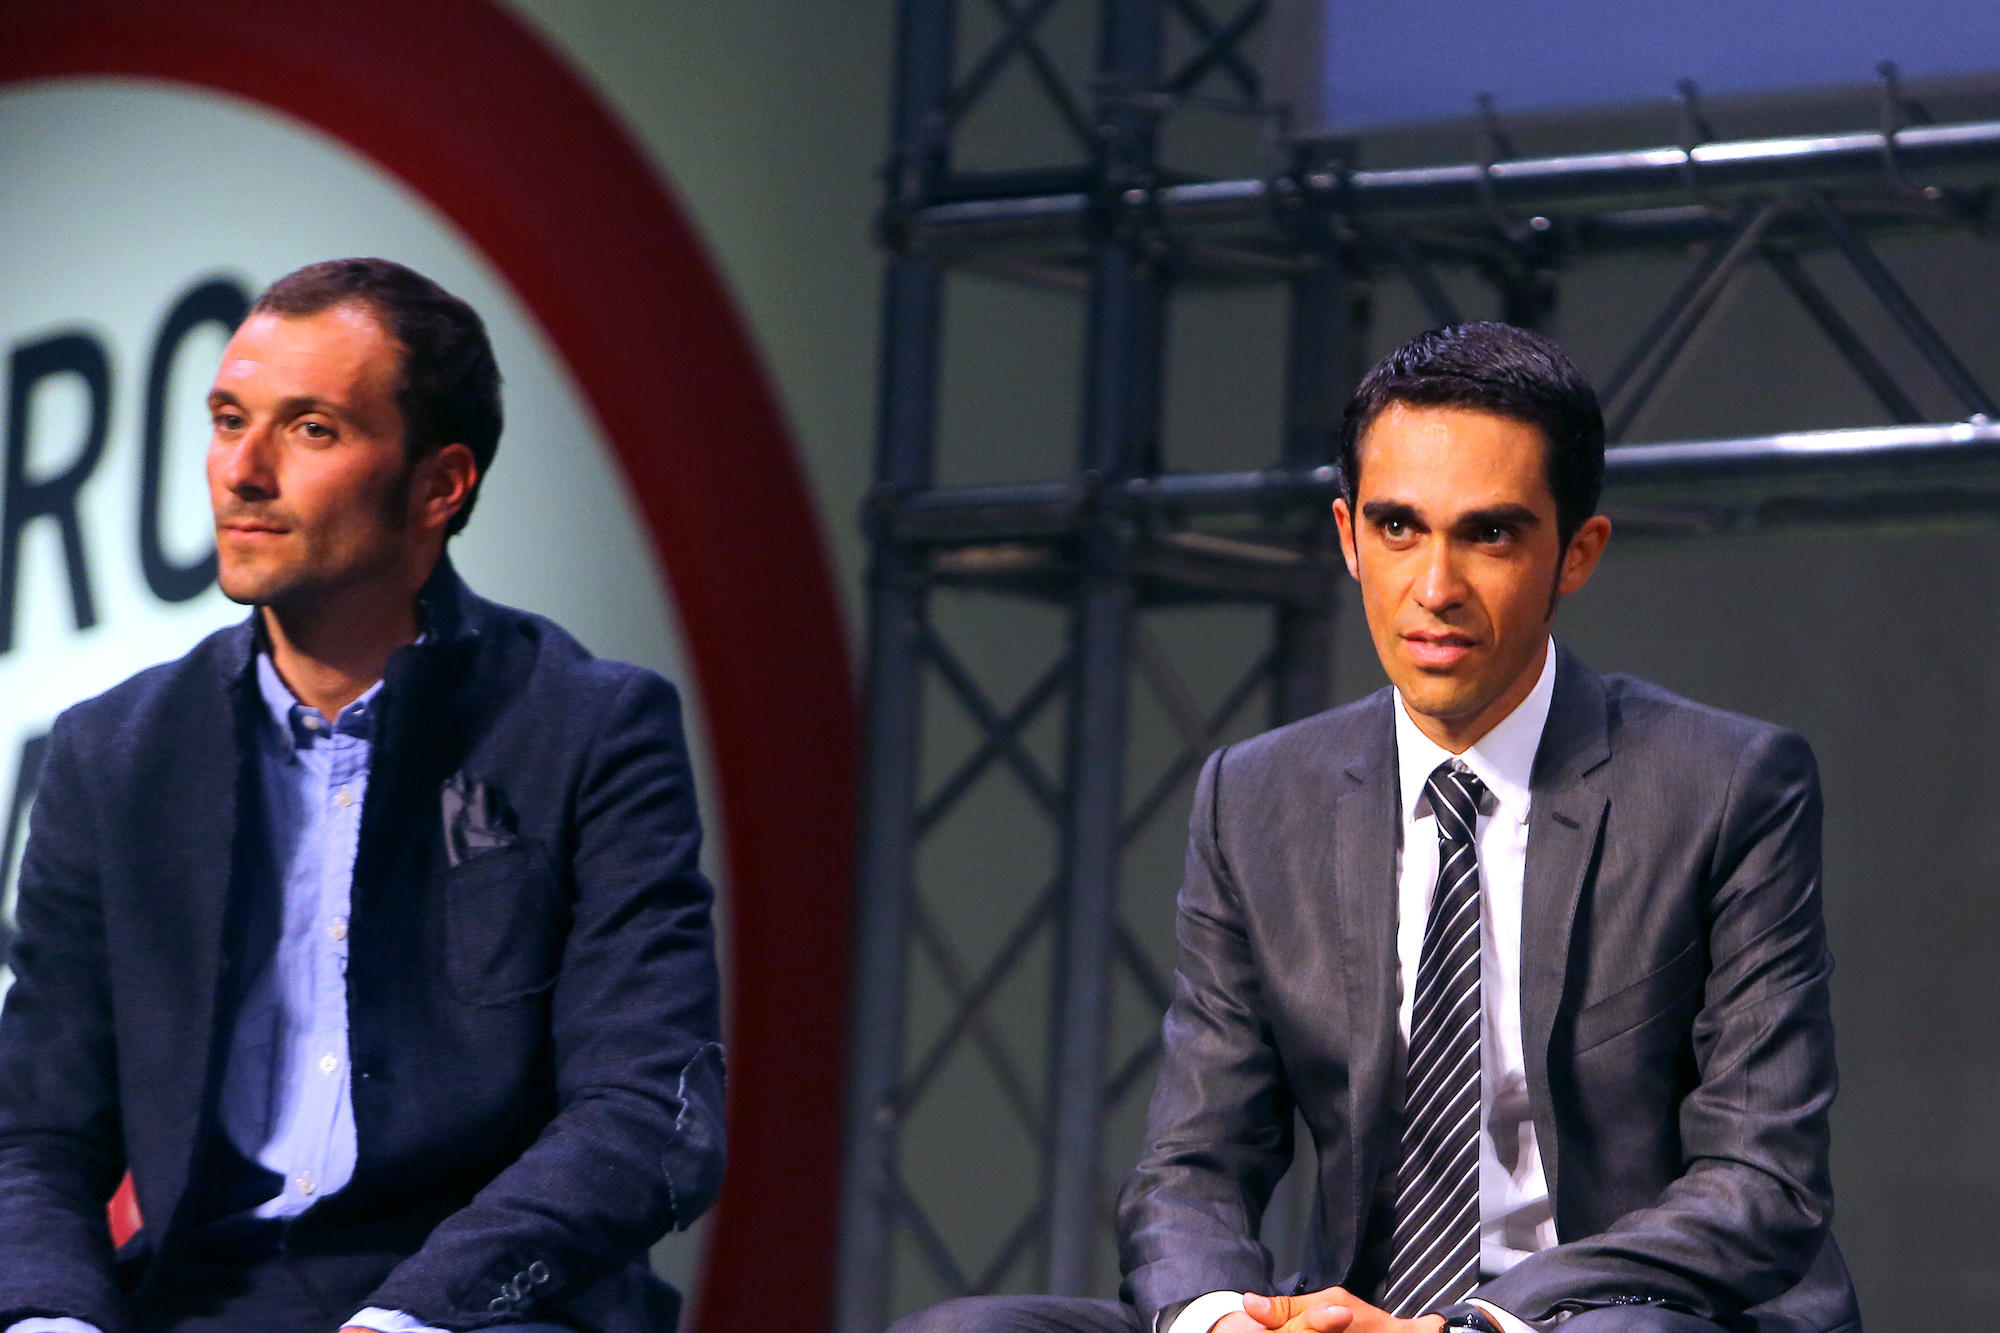 Alberto Contador and Ivan Basso want to take their development squad to the WorldTour